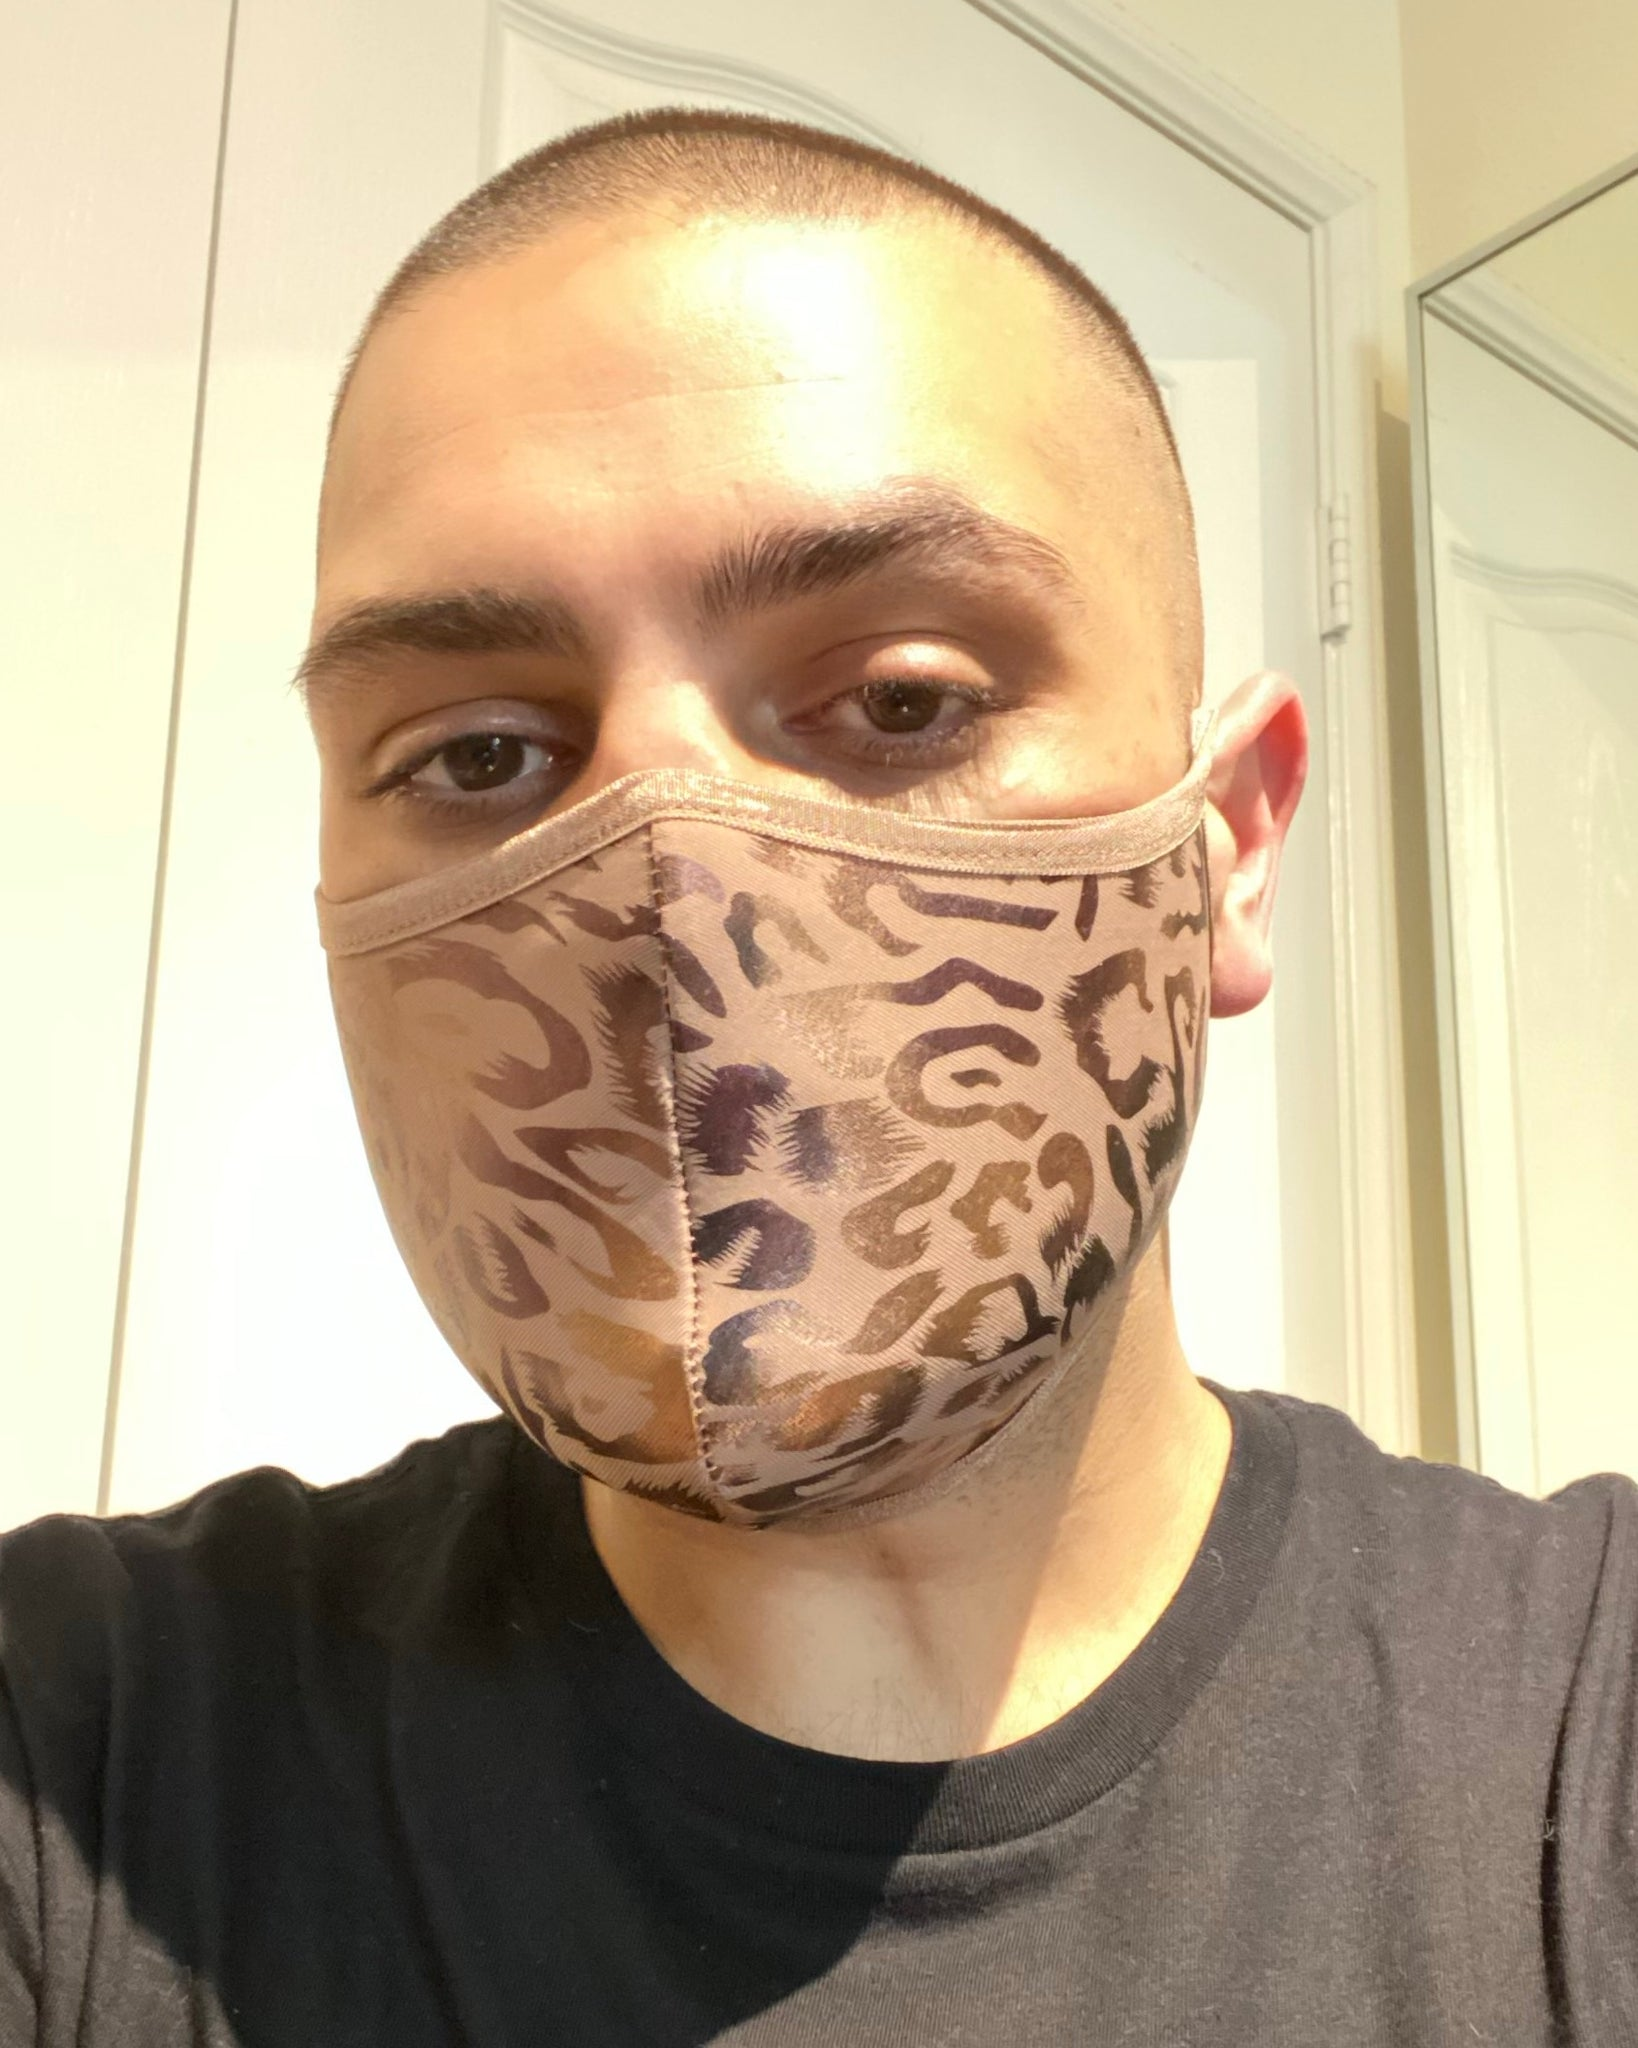 Nude Cheetah Mask (Tie Straps)